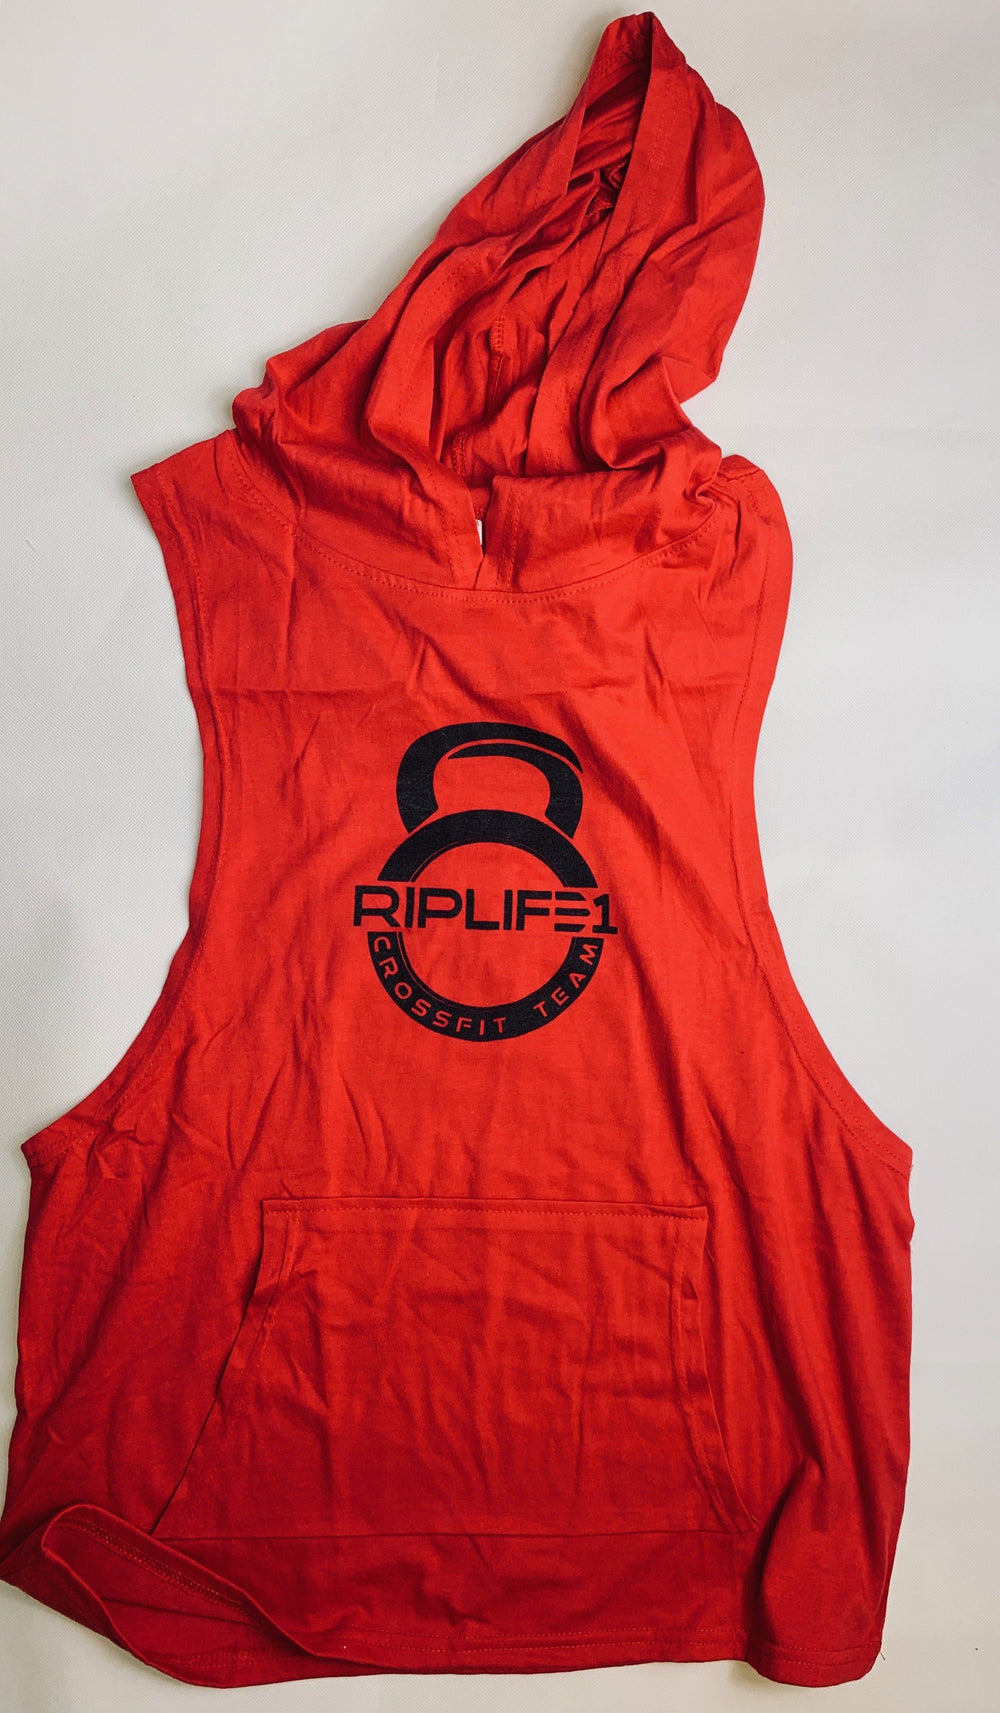 RIPLIFE1  Cross Fit Sleeveless Hoodie T-shirt - RIPLIFE1